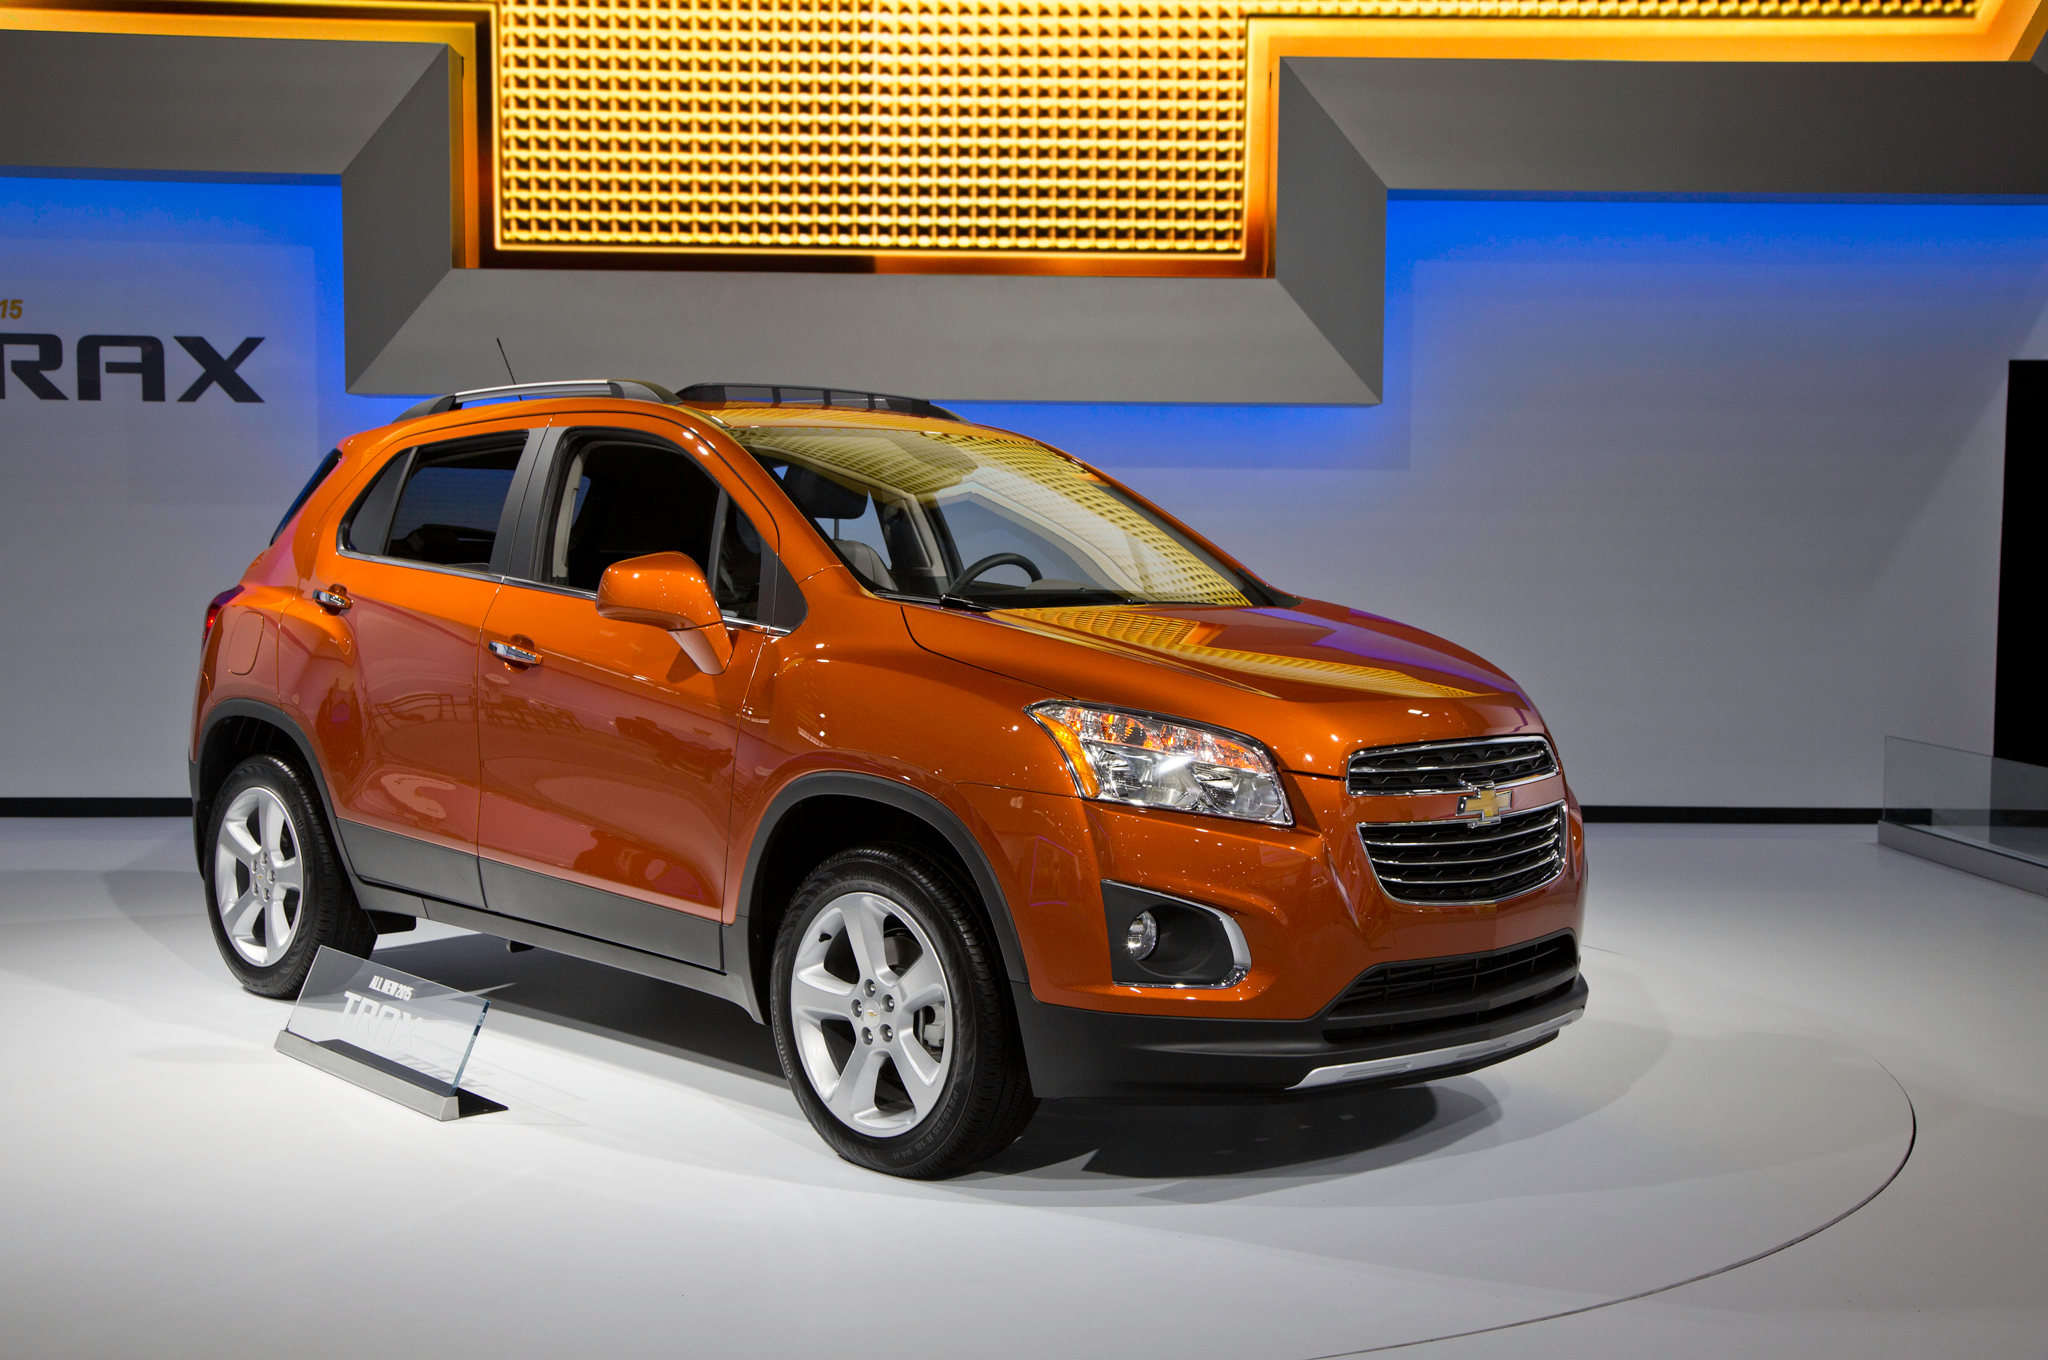 2015 Chevrolet Trax Exterior Design (Photo 3 of 8)